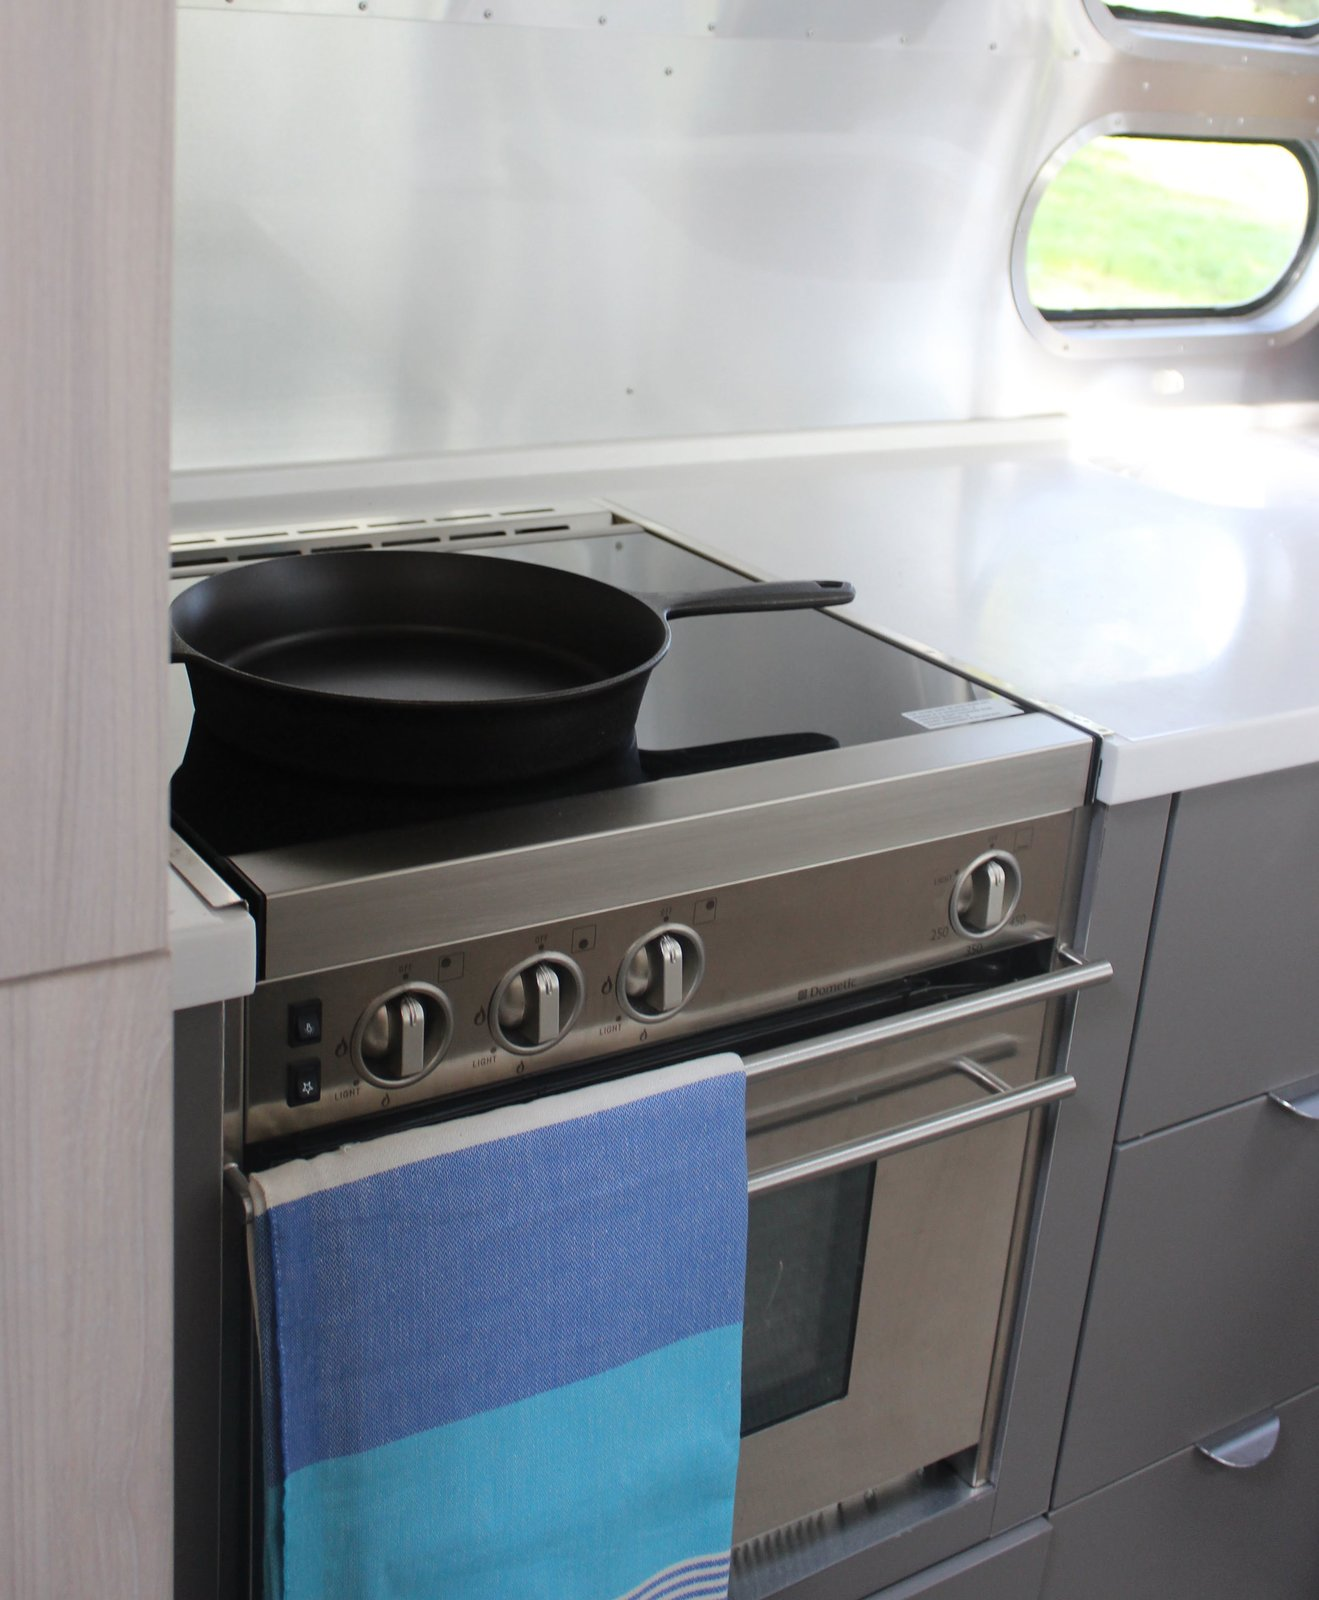 Kitchen, Wall Oven, and Cooktops The well-appointed kitchen features Corian surfaces, a Baraldi hood vent, and a glass cooktop. A slide-out pantry and a slide-out convection microwave make prepping meals a cinch.  Photo 9 of 17 in Bodega Bay or Bust: Taking the Airstream Globetrotter to Northern California's Coastal Gem